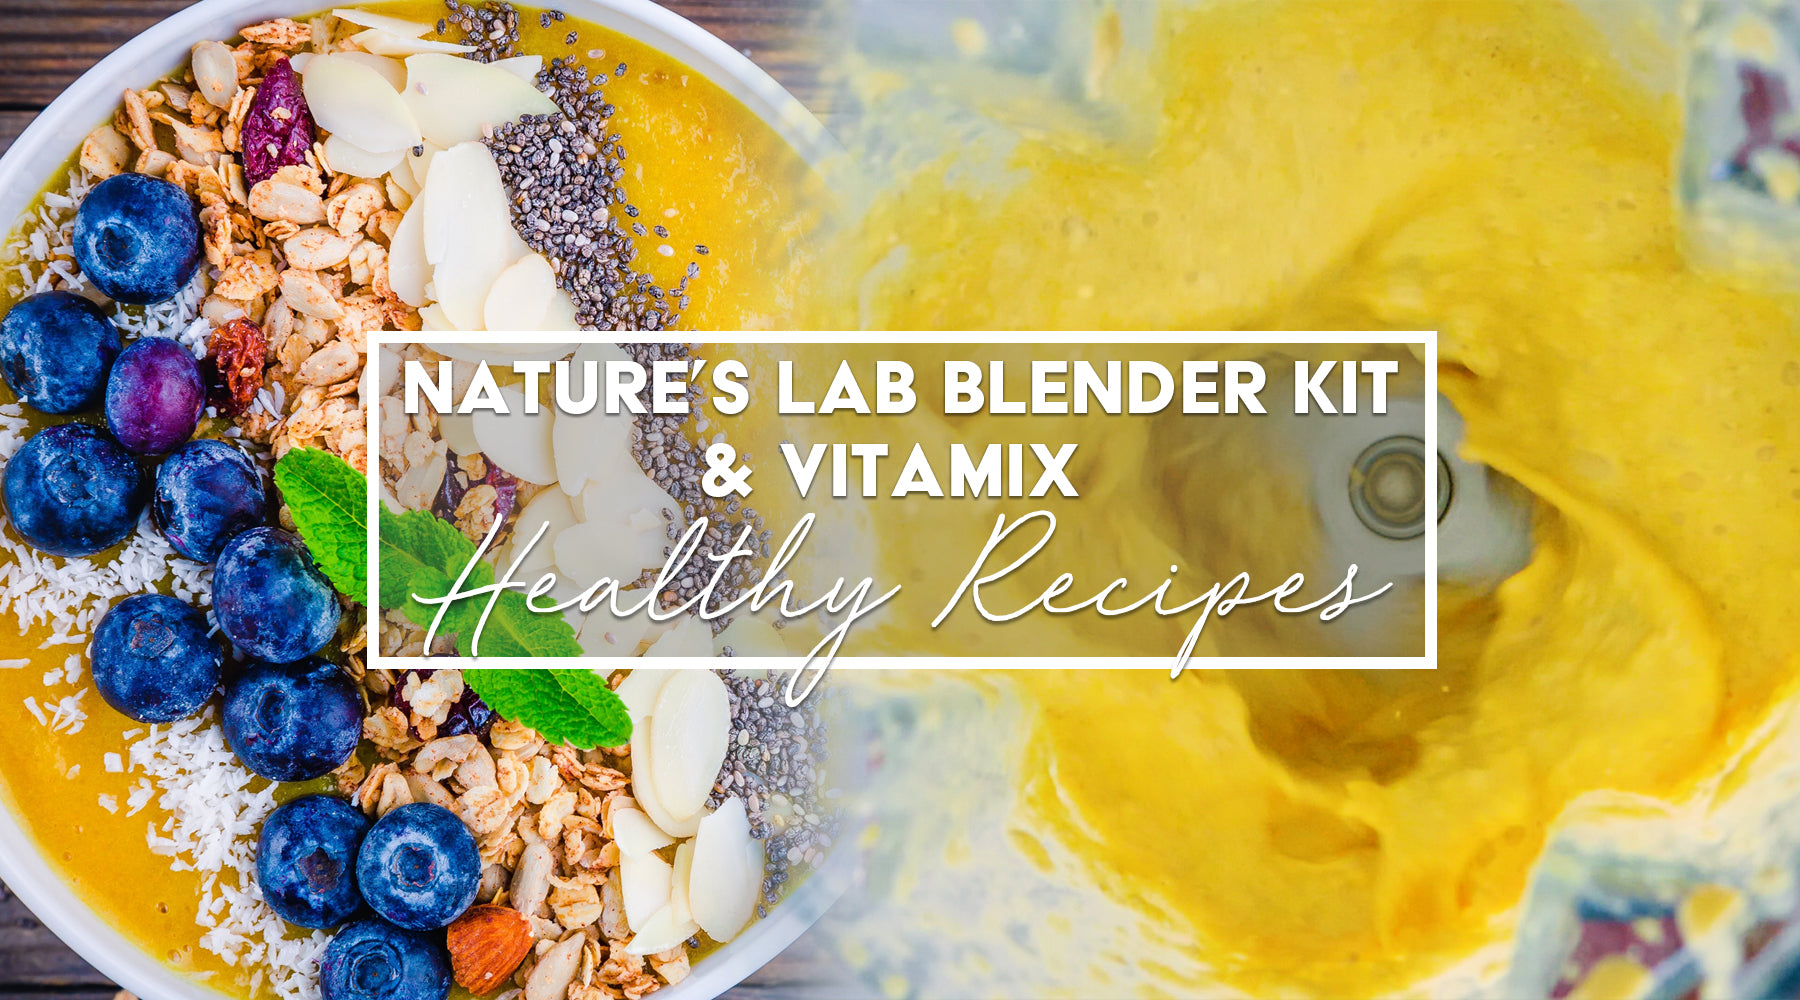 Nature's Lab Blender Kit & Vitamix Healthy Recipes